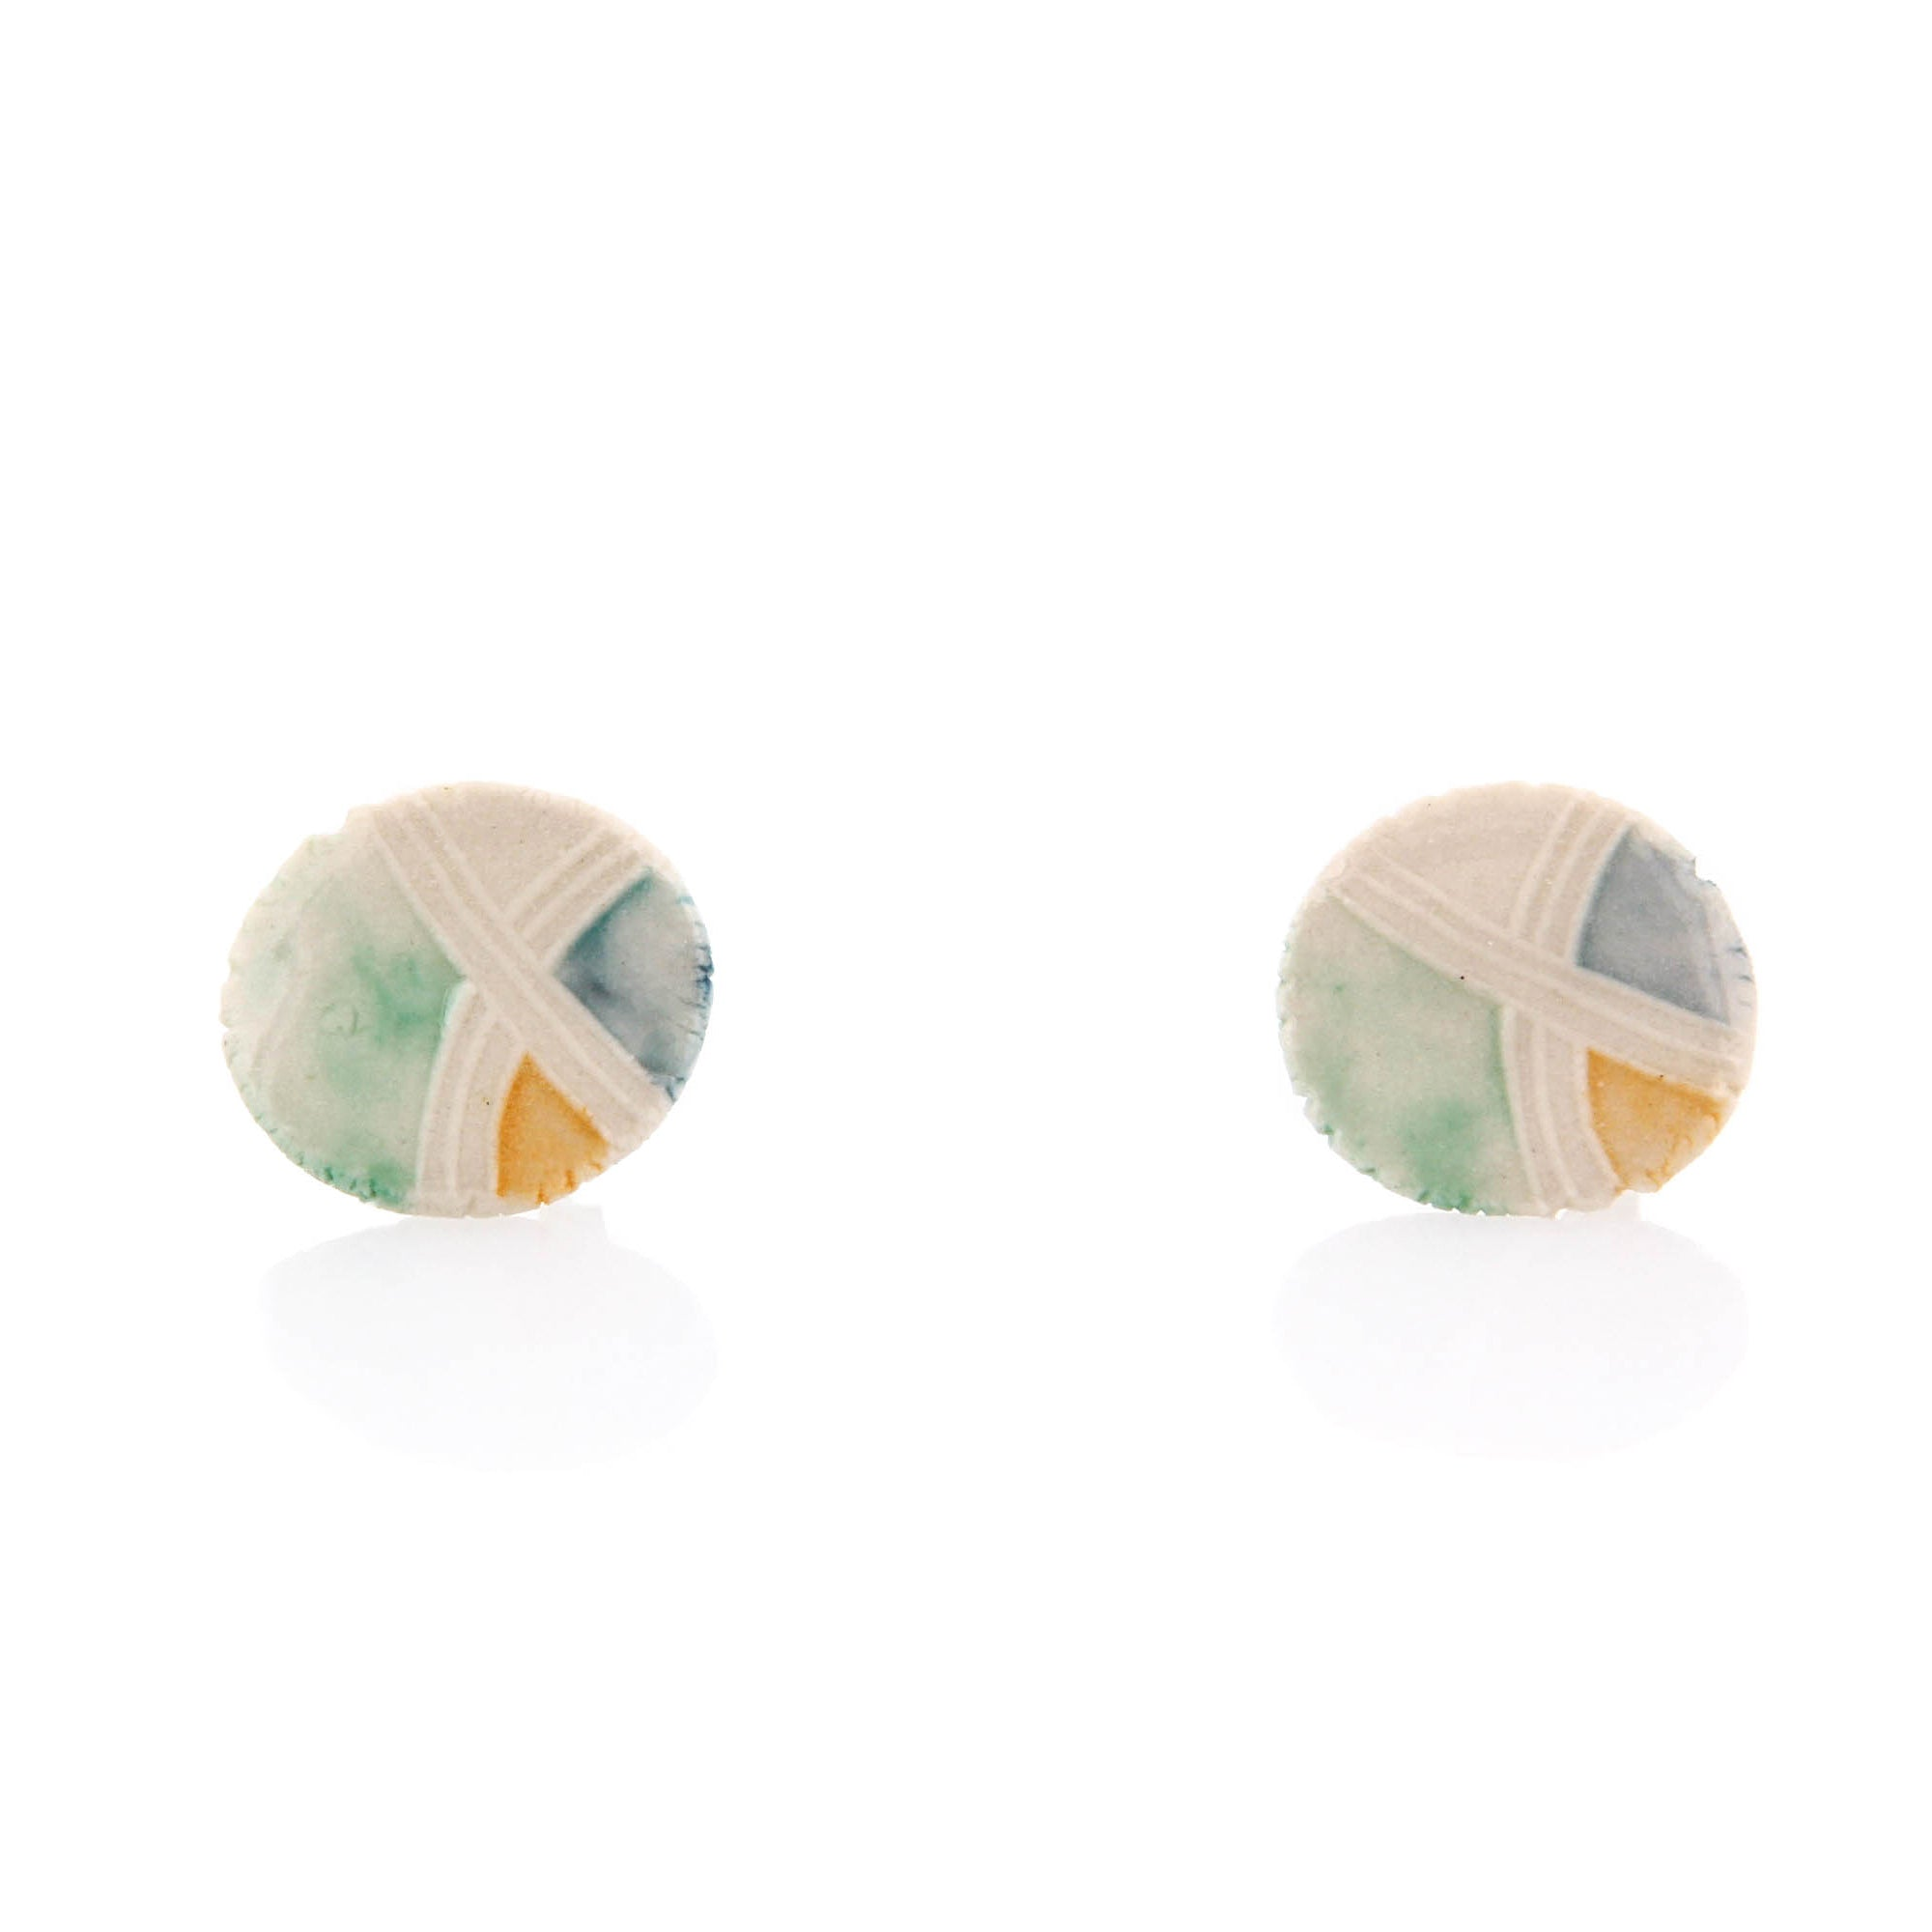 Carole Epp, Stud Earrings, Porcelain